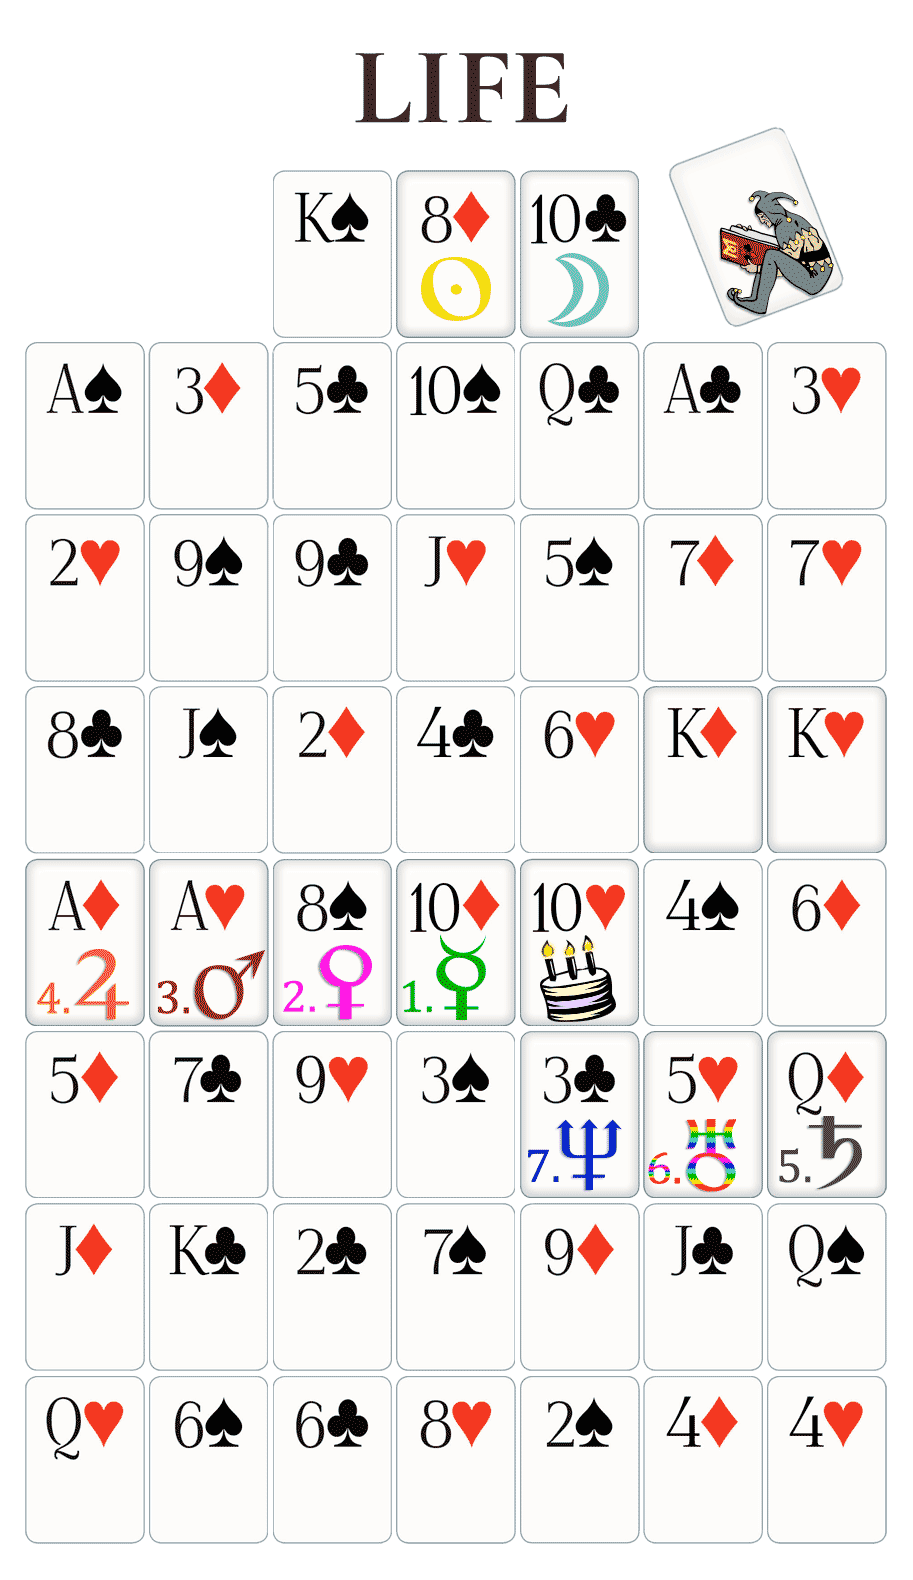 Life tablet illustrating the 7 major cards and the planetary players for the 10 of Heart